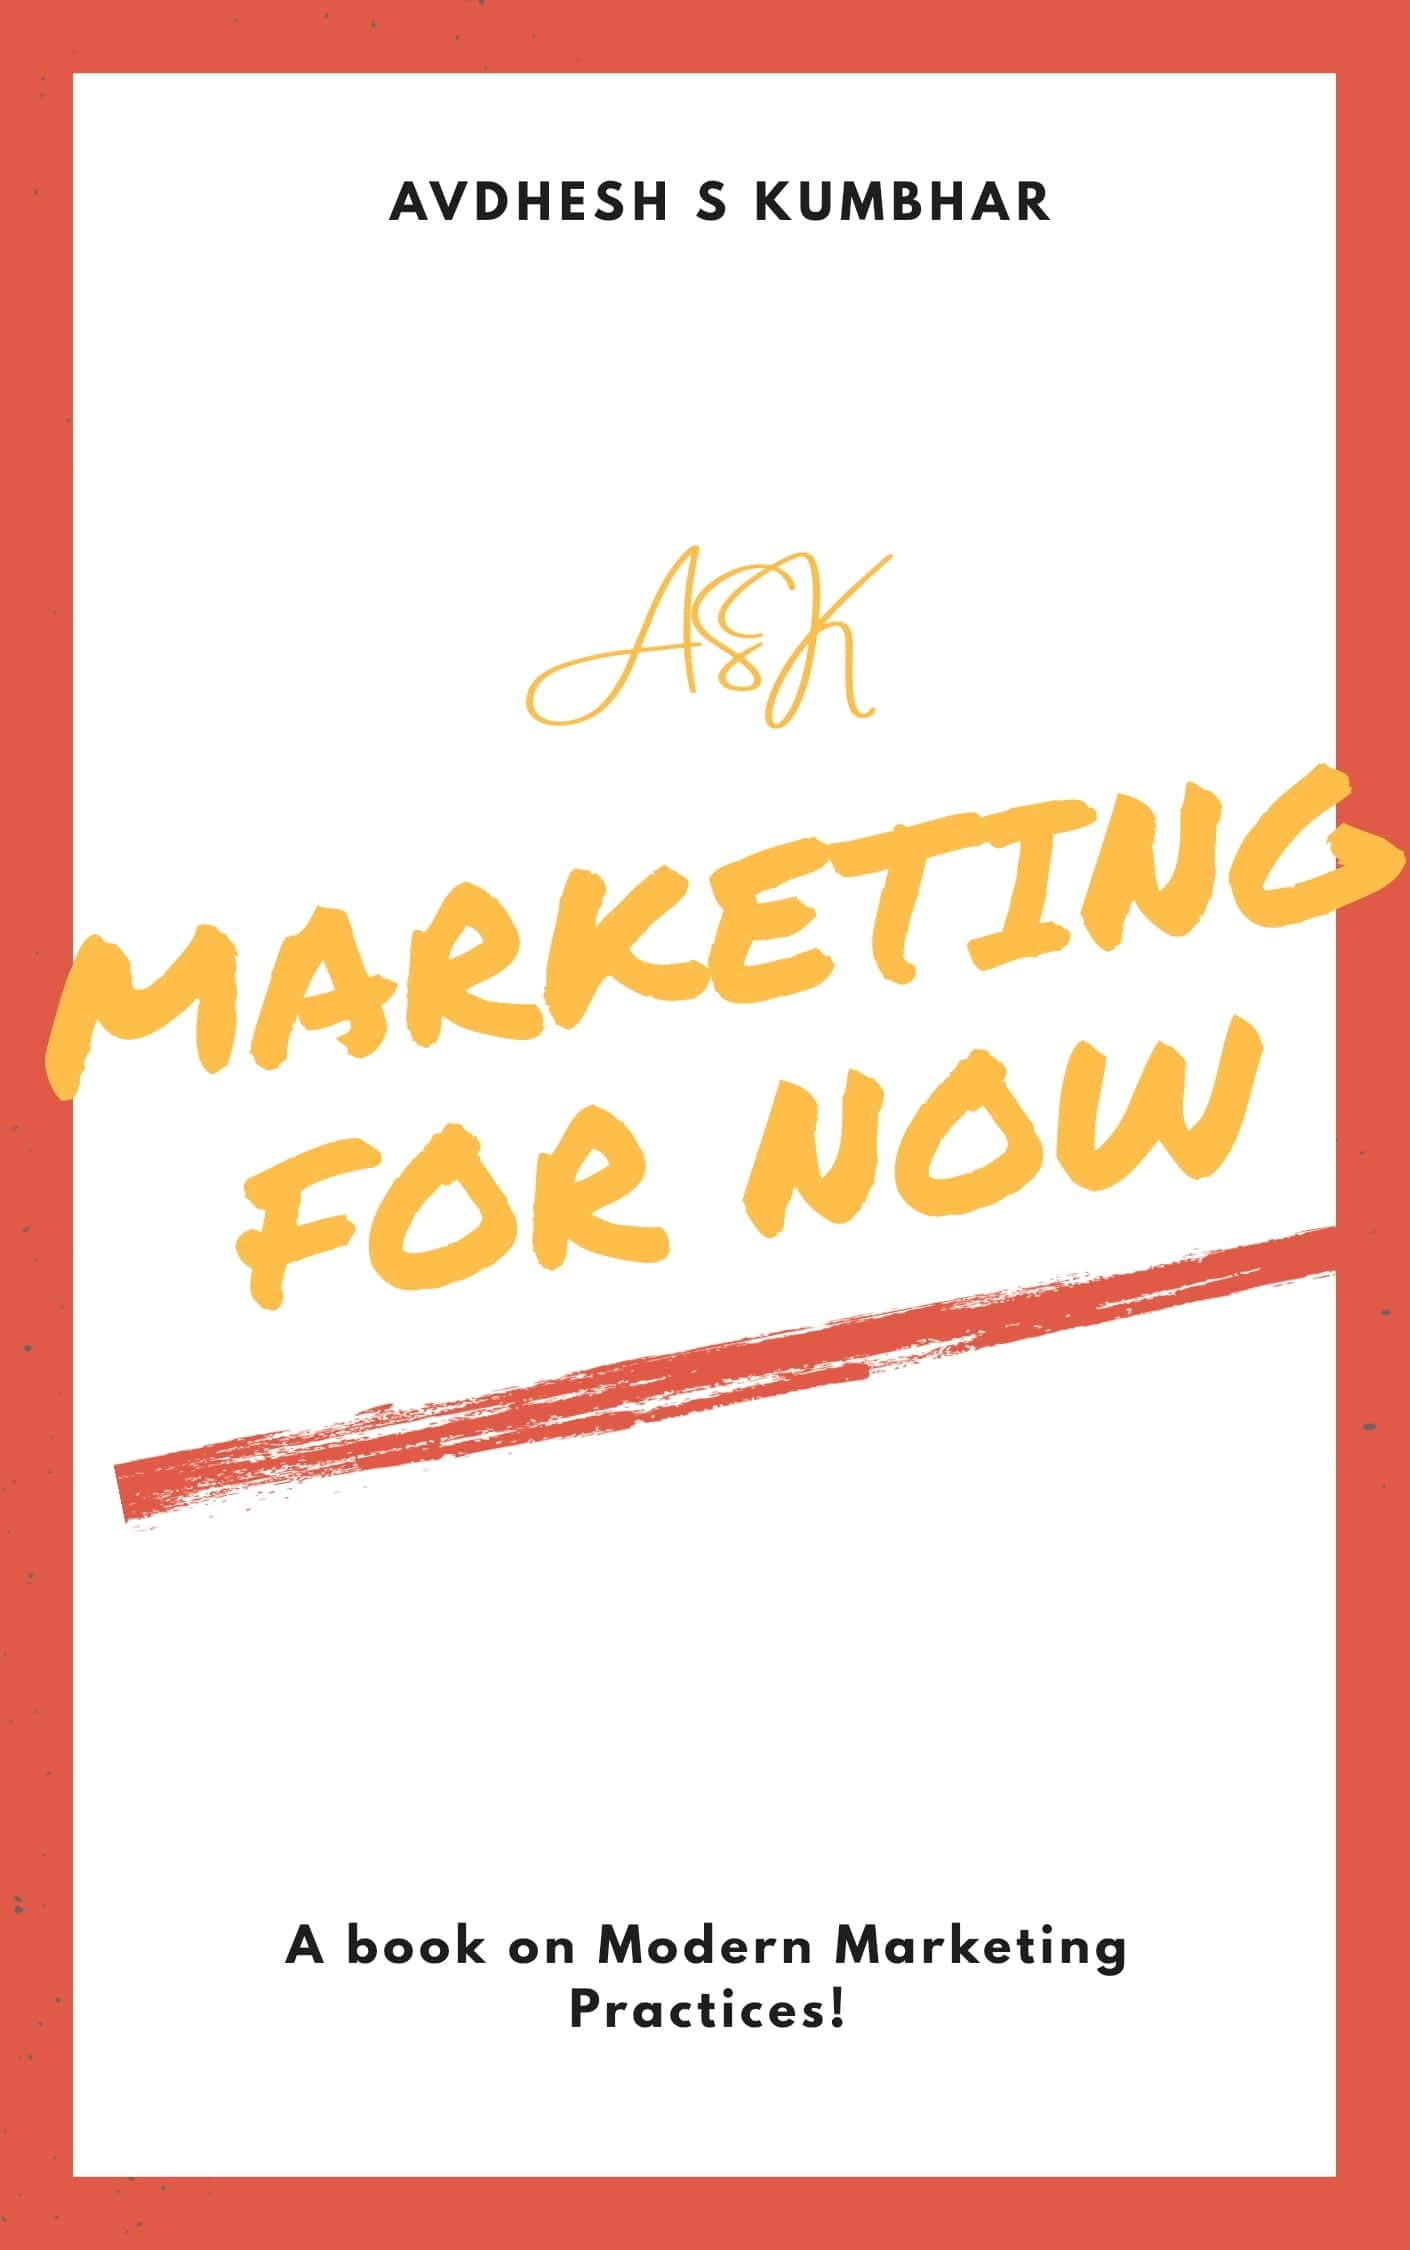 Modern Marketing - Marketing for the Now